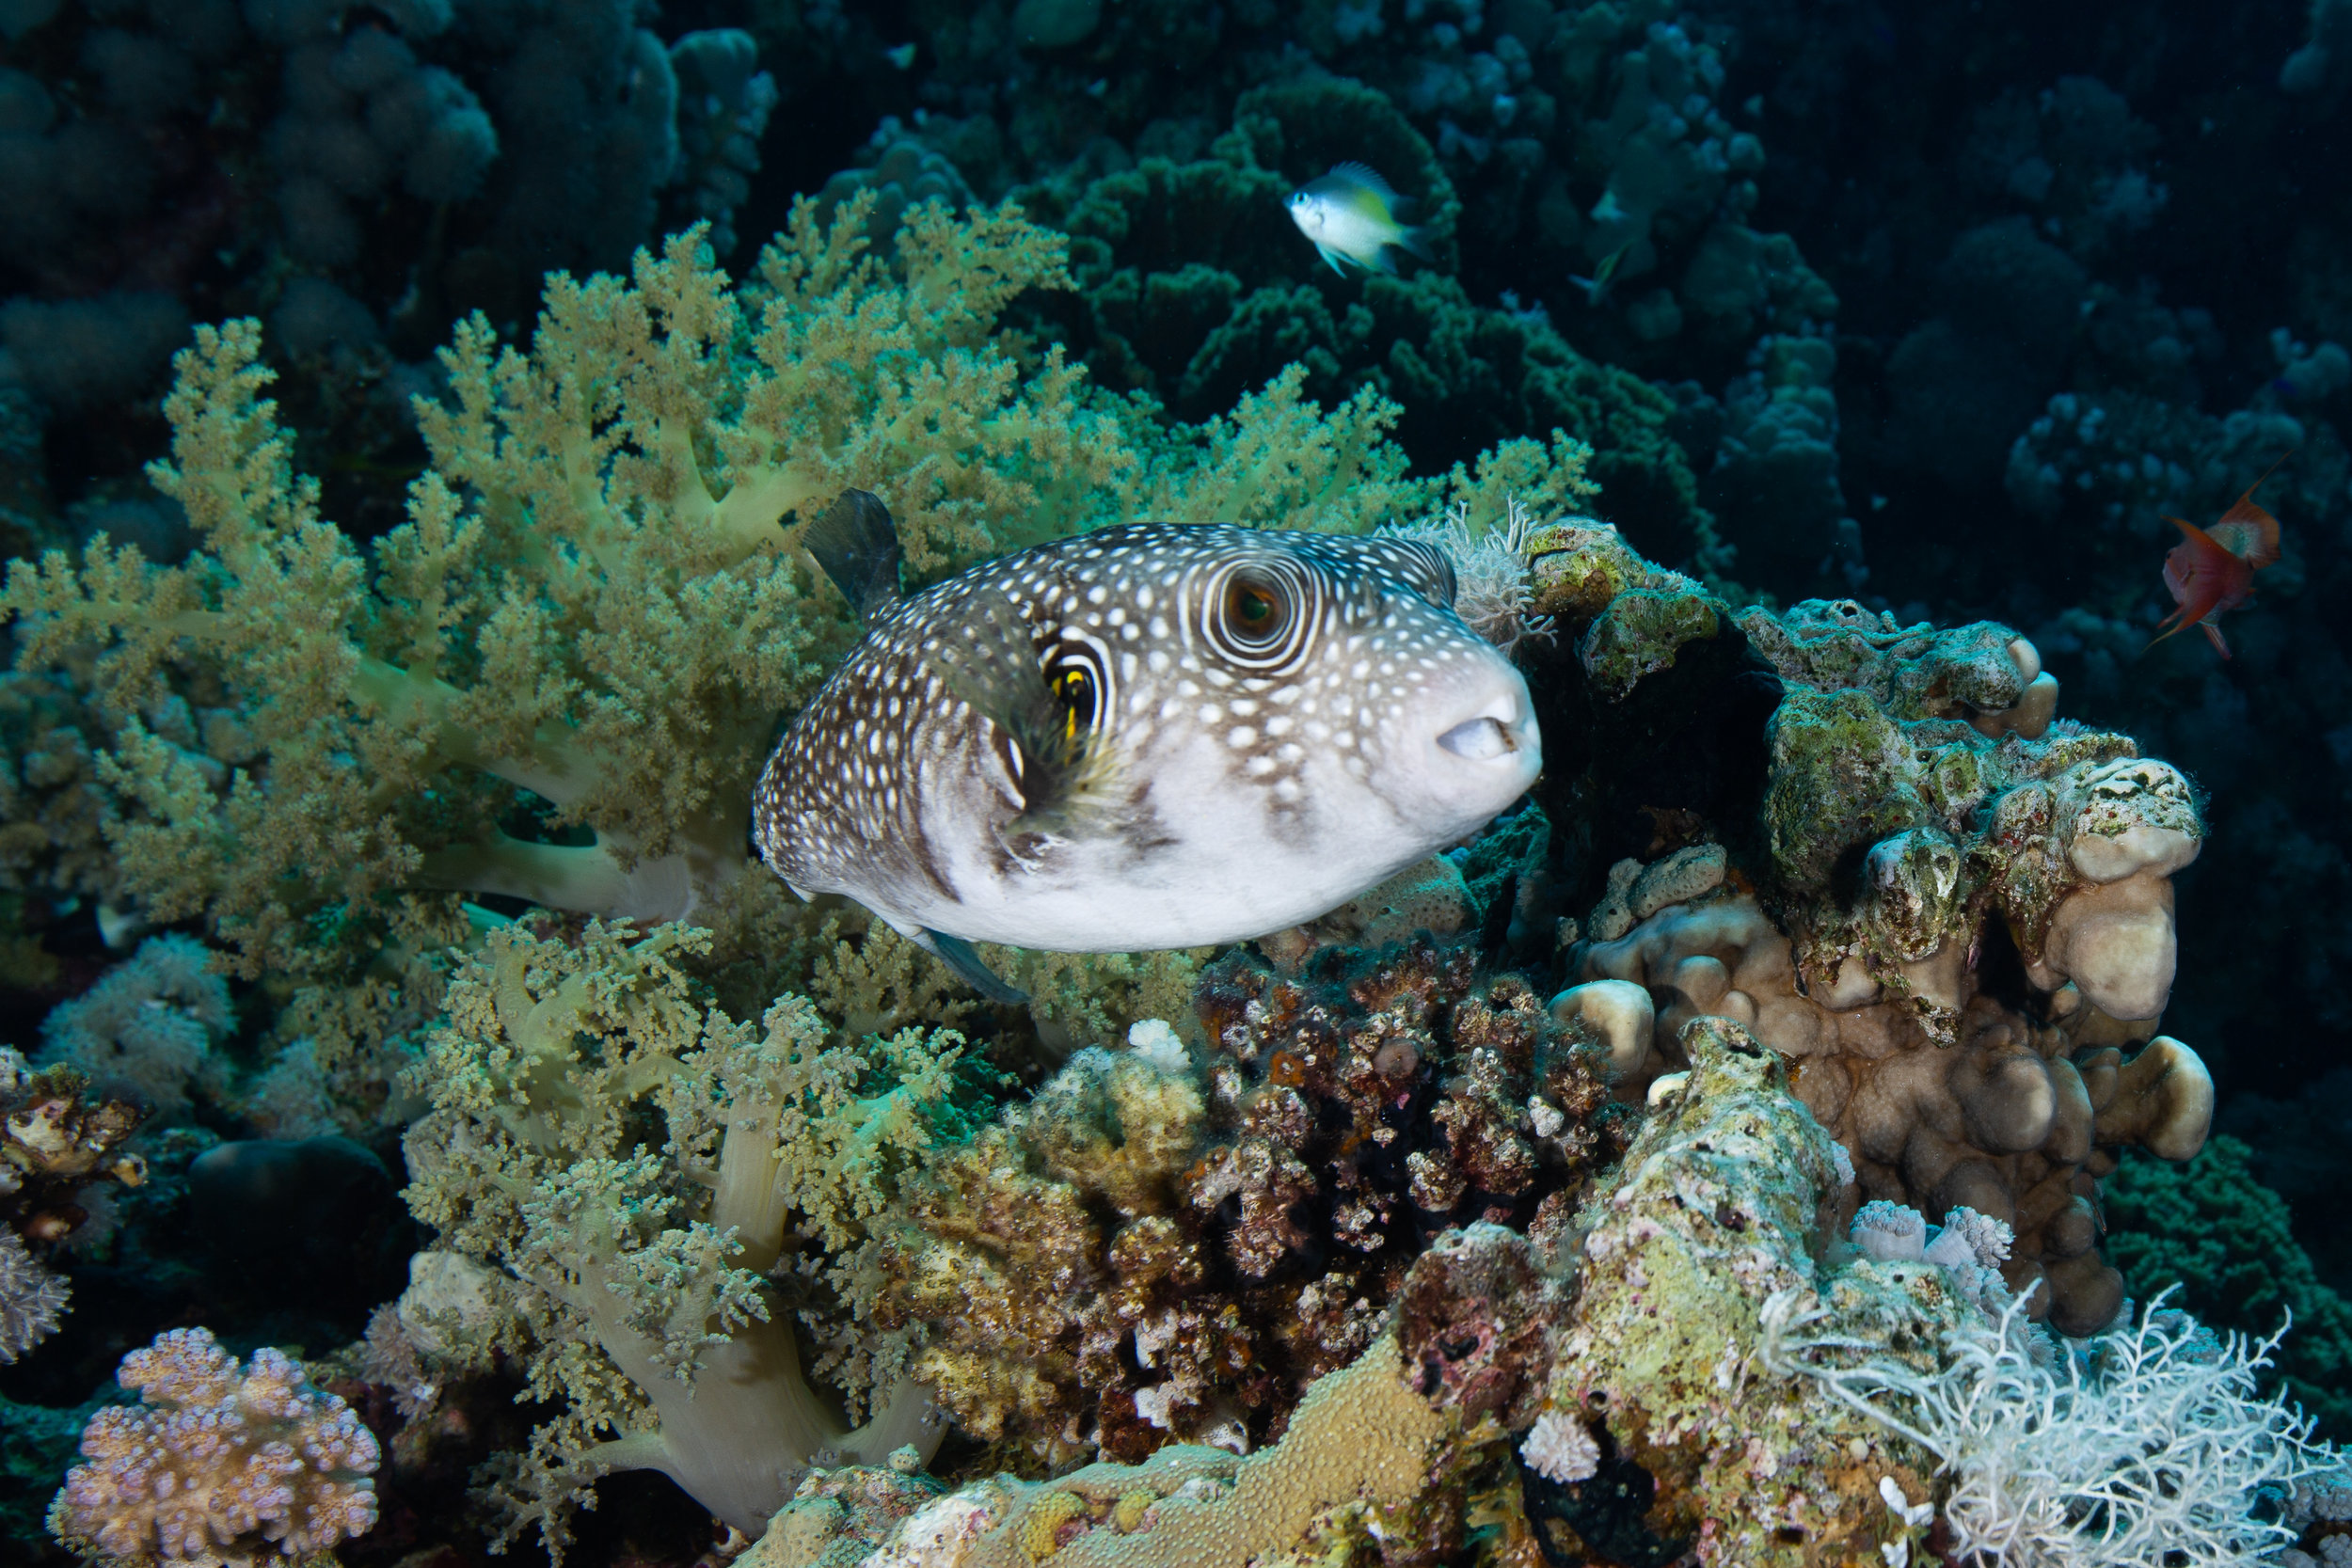 Pufferfish, Sharm El Sheikh, Red Sea - Egypt - Wild Earth Expeditions